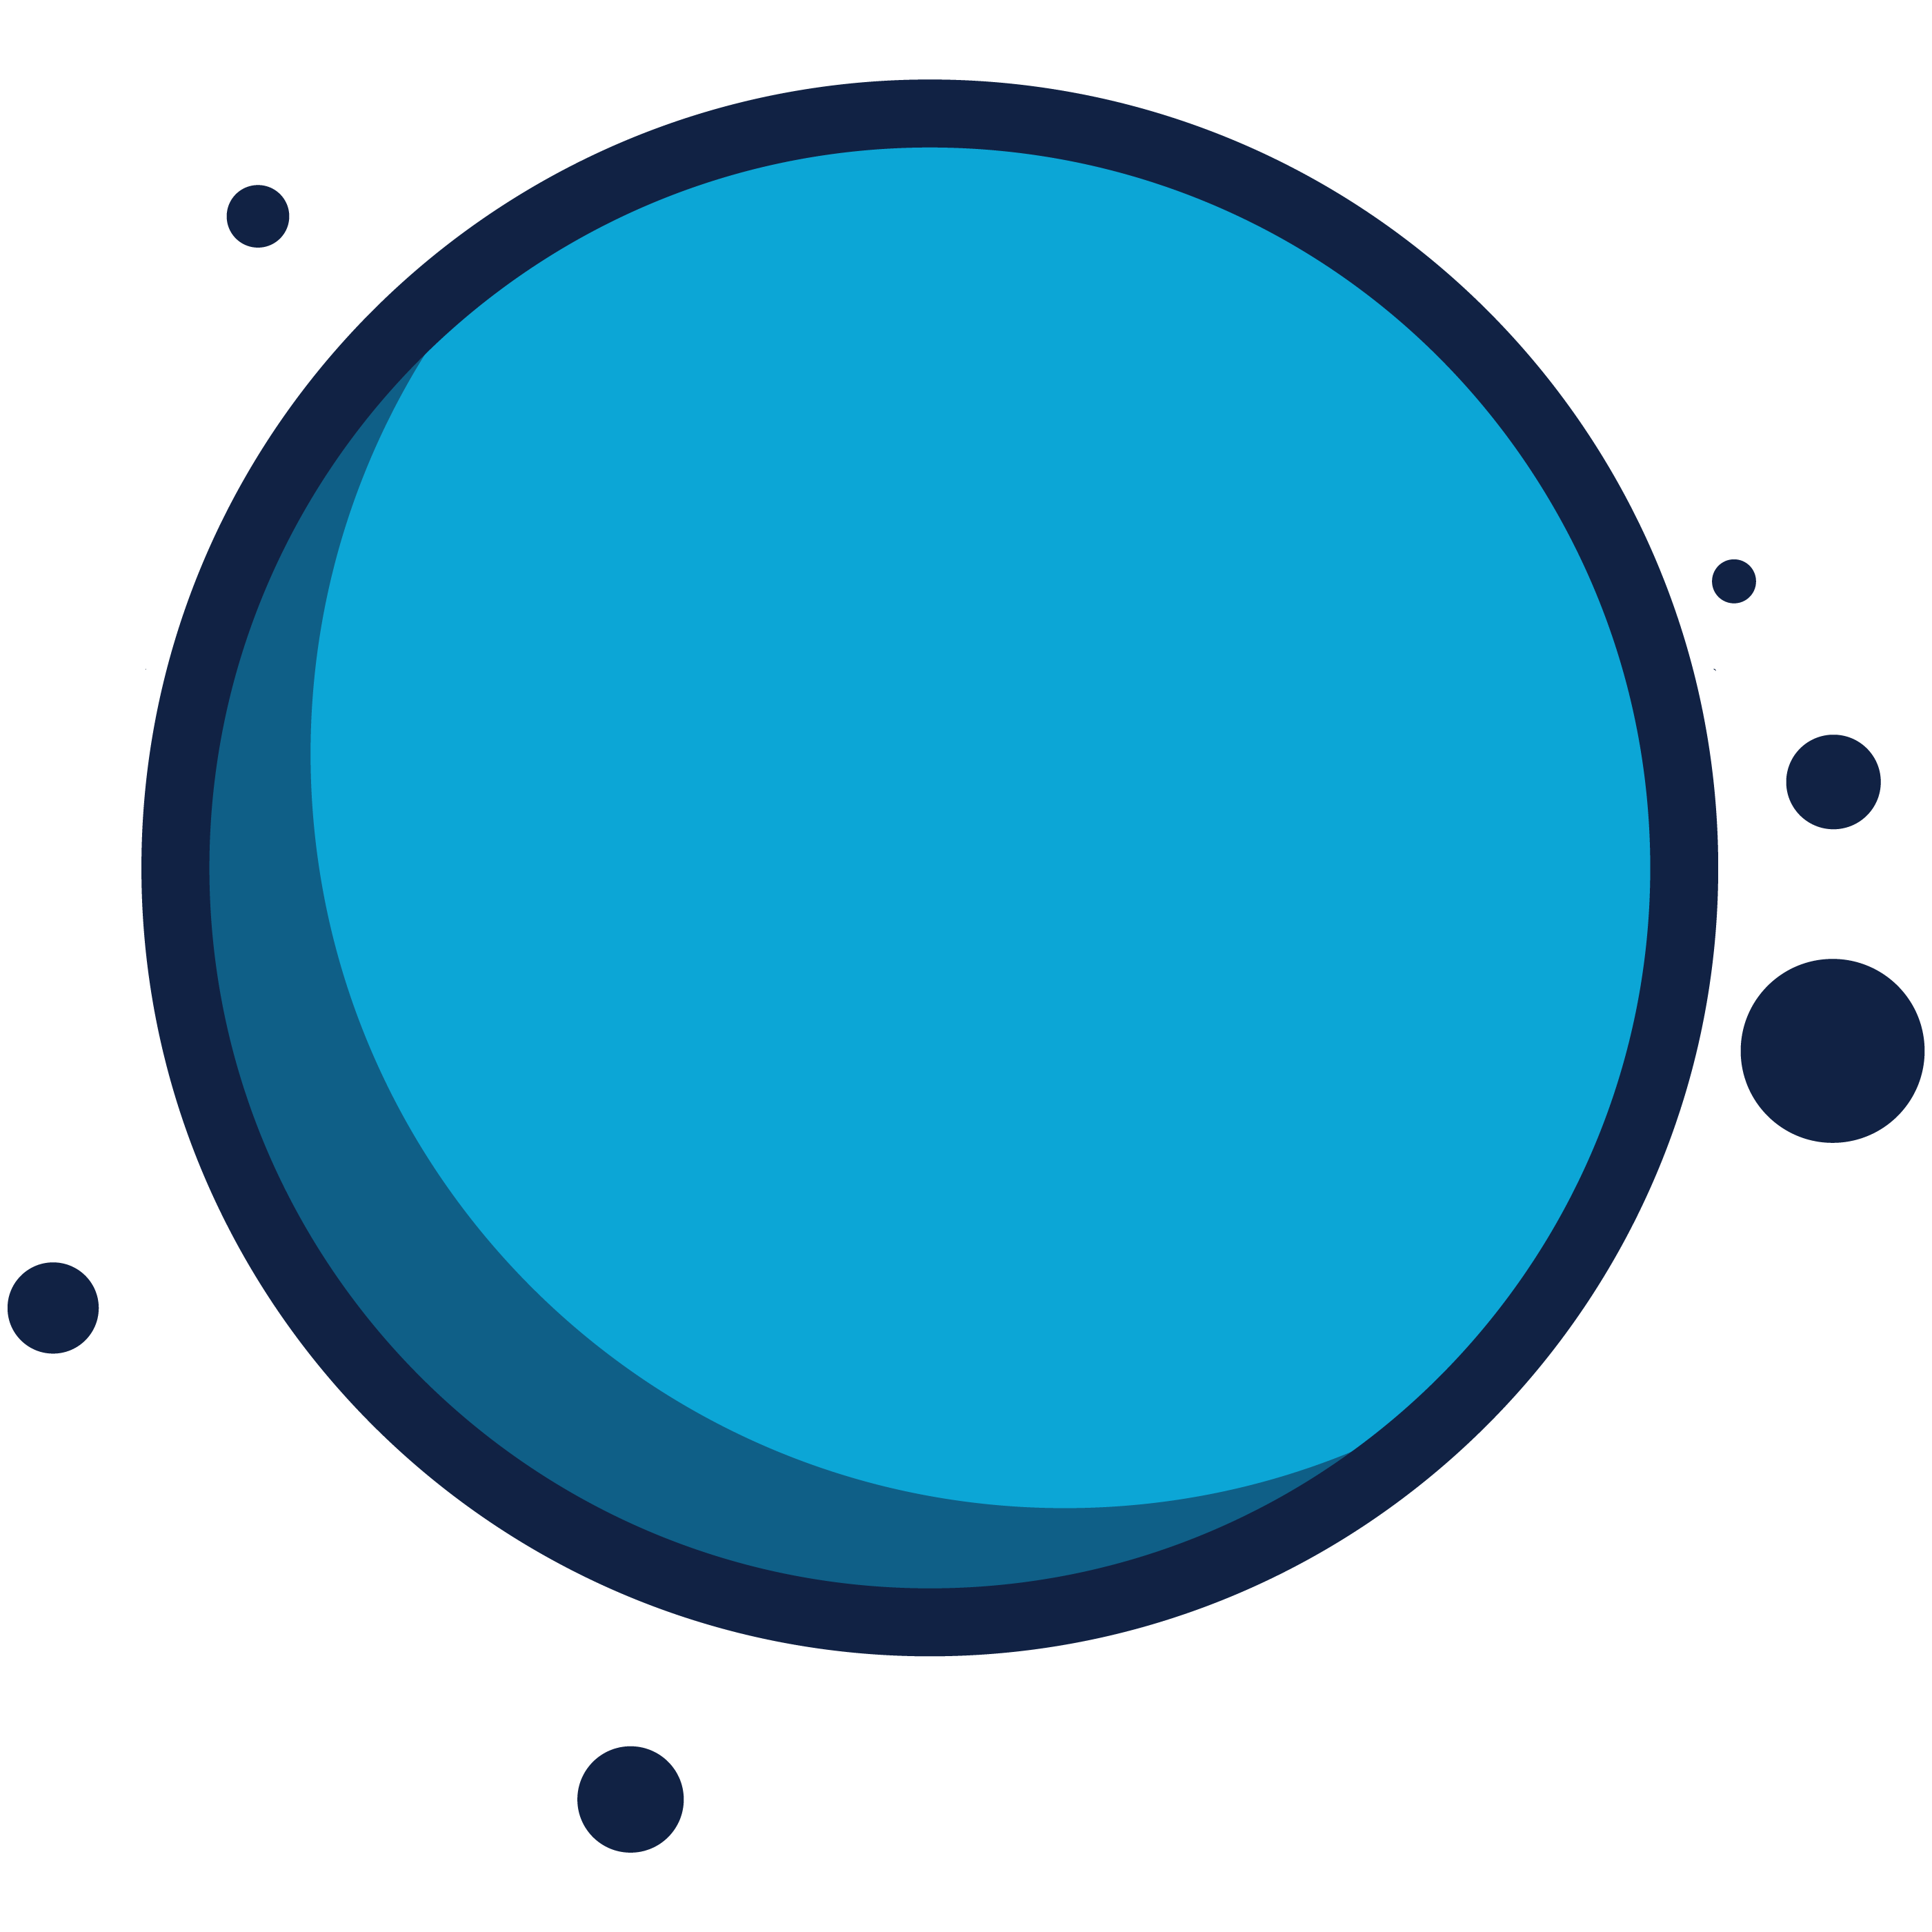 2D Vector Graphic of a World with Orbs